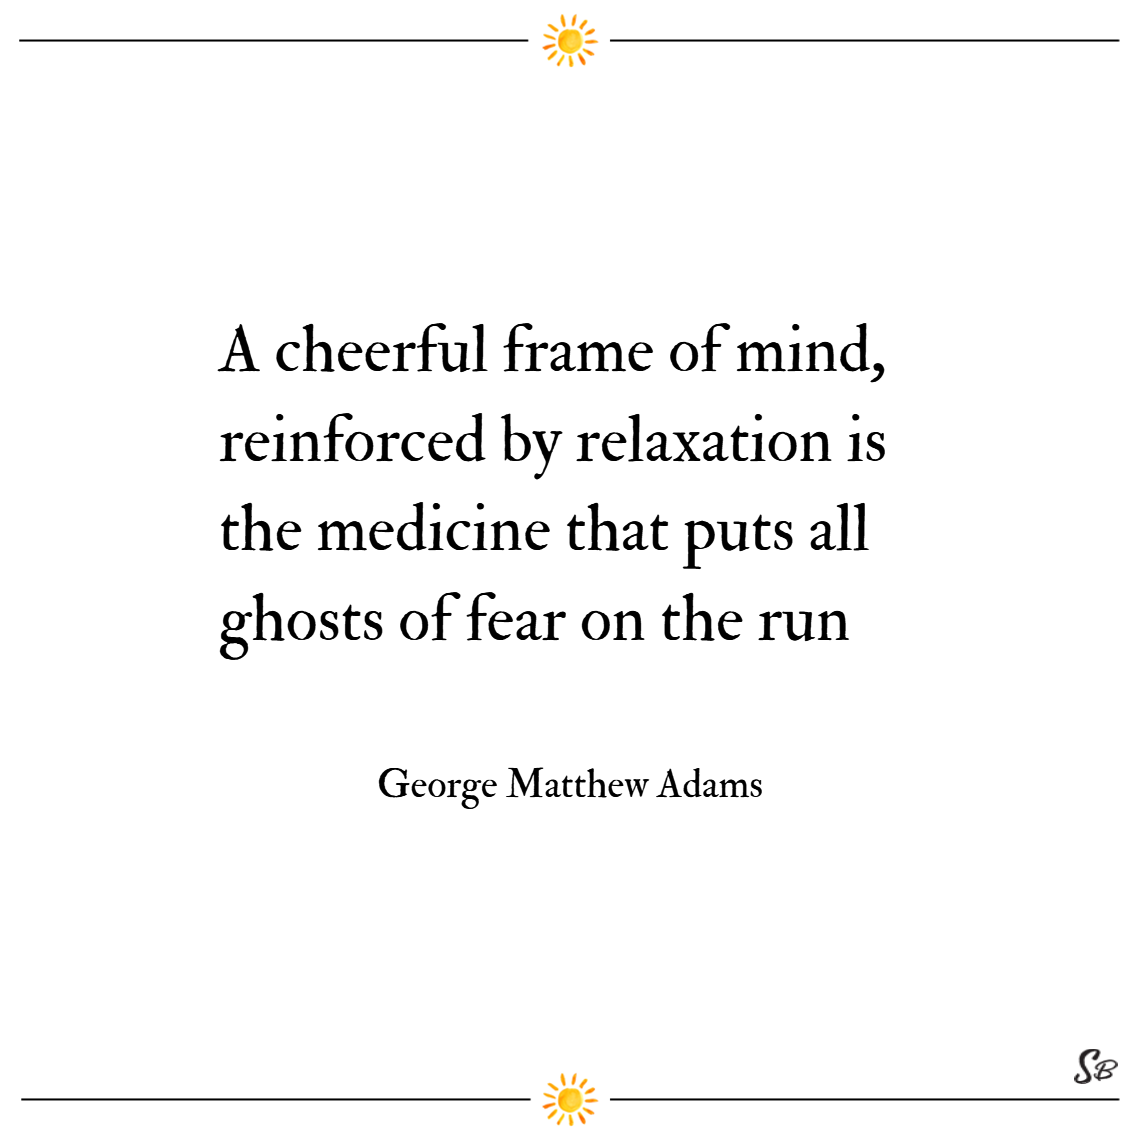 A cheerful frame of mind, reinforced by relaxation... is the medicine that puts all ghosts of fear on the run. – george matthew adams cheer up quotes